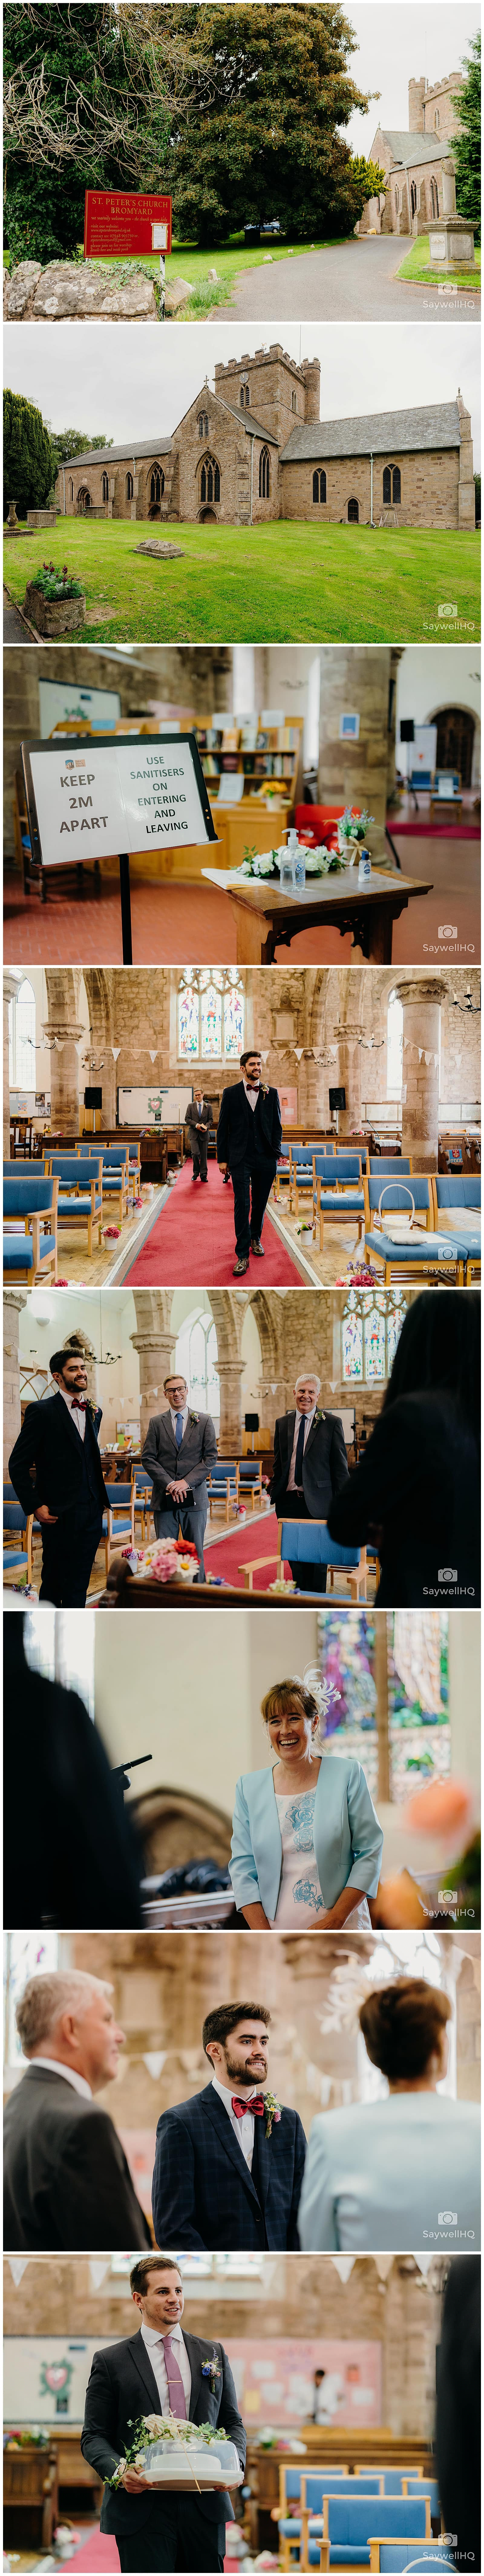 Groom and Wedding guests arrive for the wedding at St Peters Church in Bromyard Herefordshire